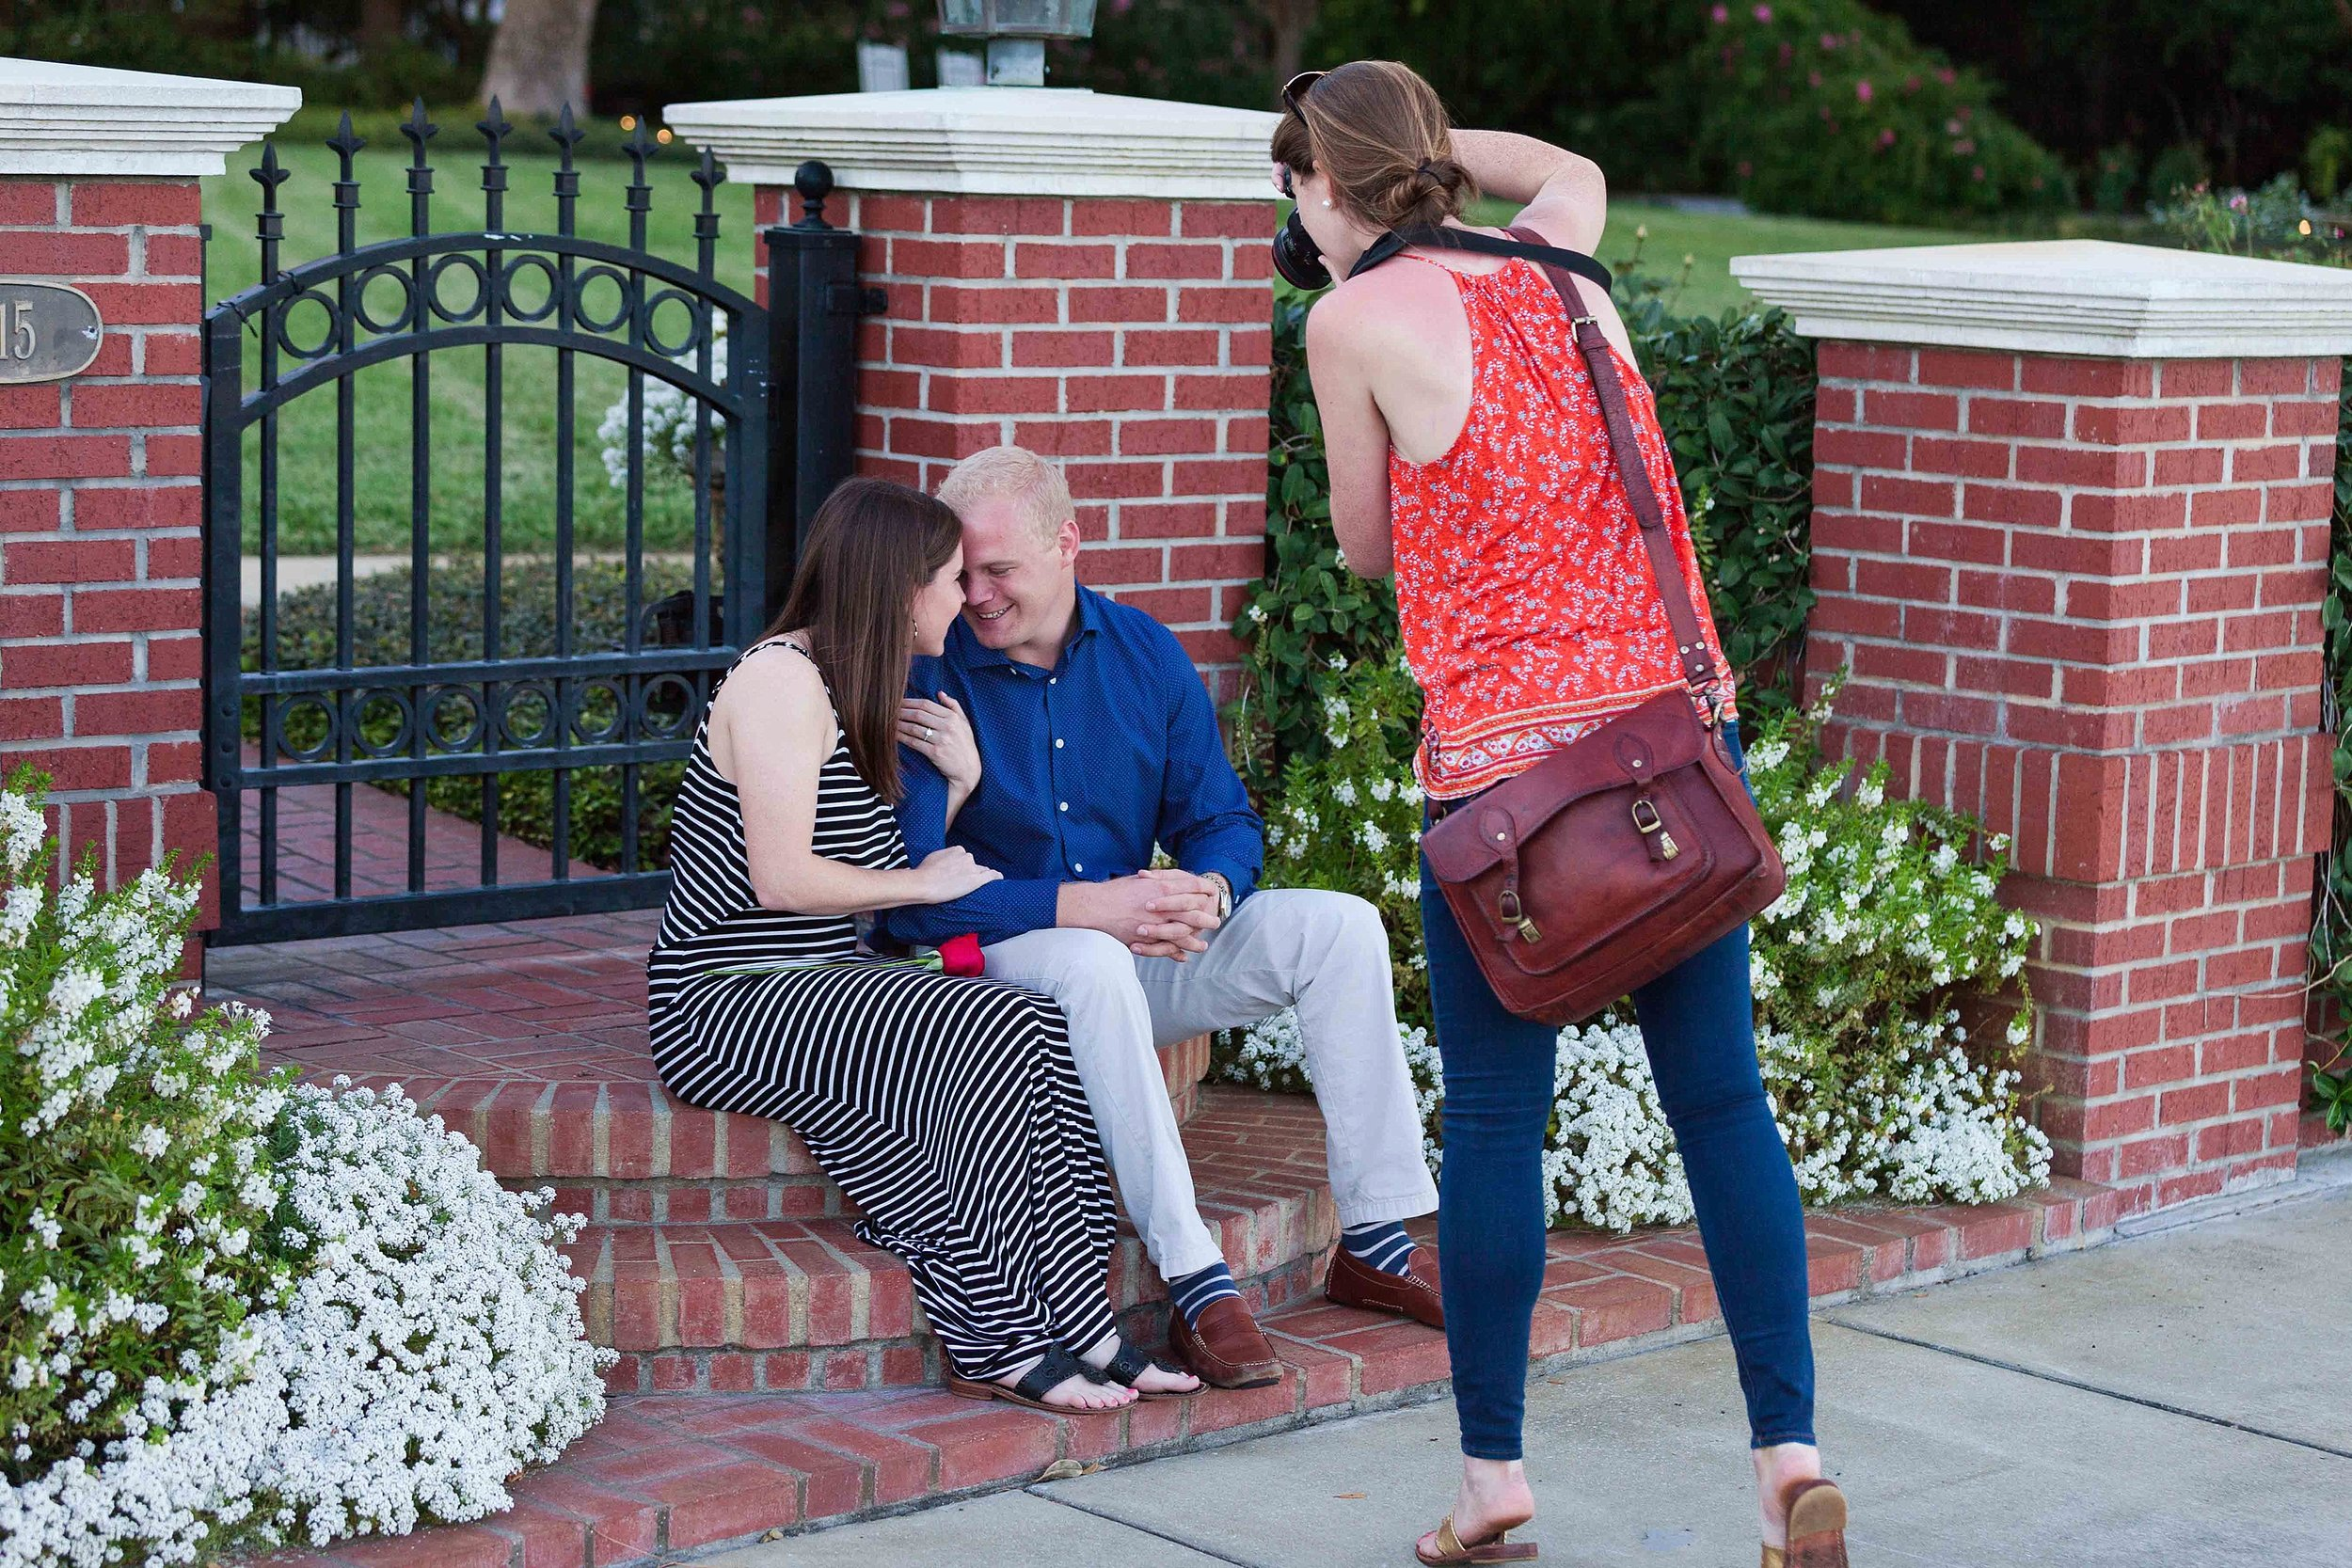 Then got to sneak a couple photos of the after engagement bliss!